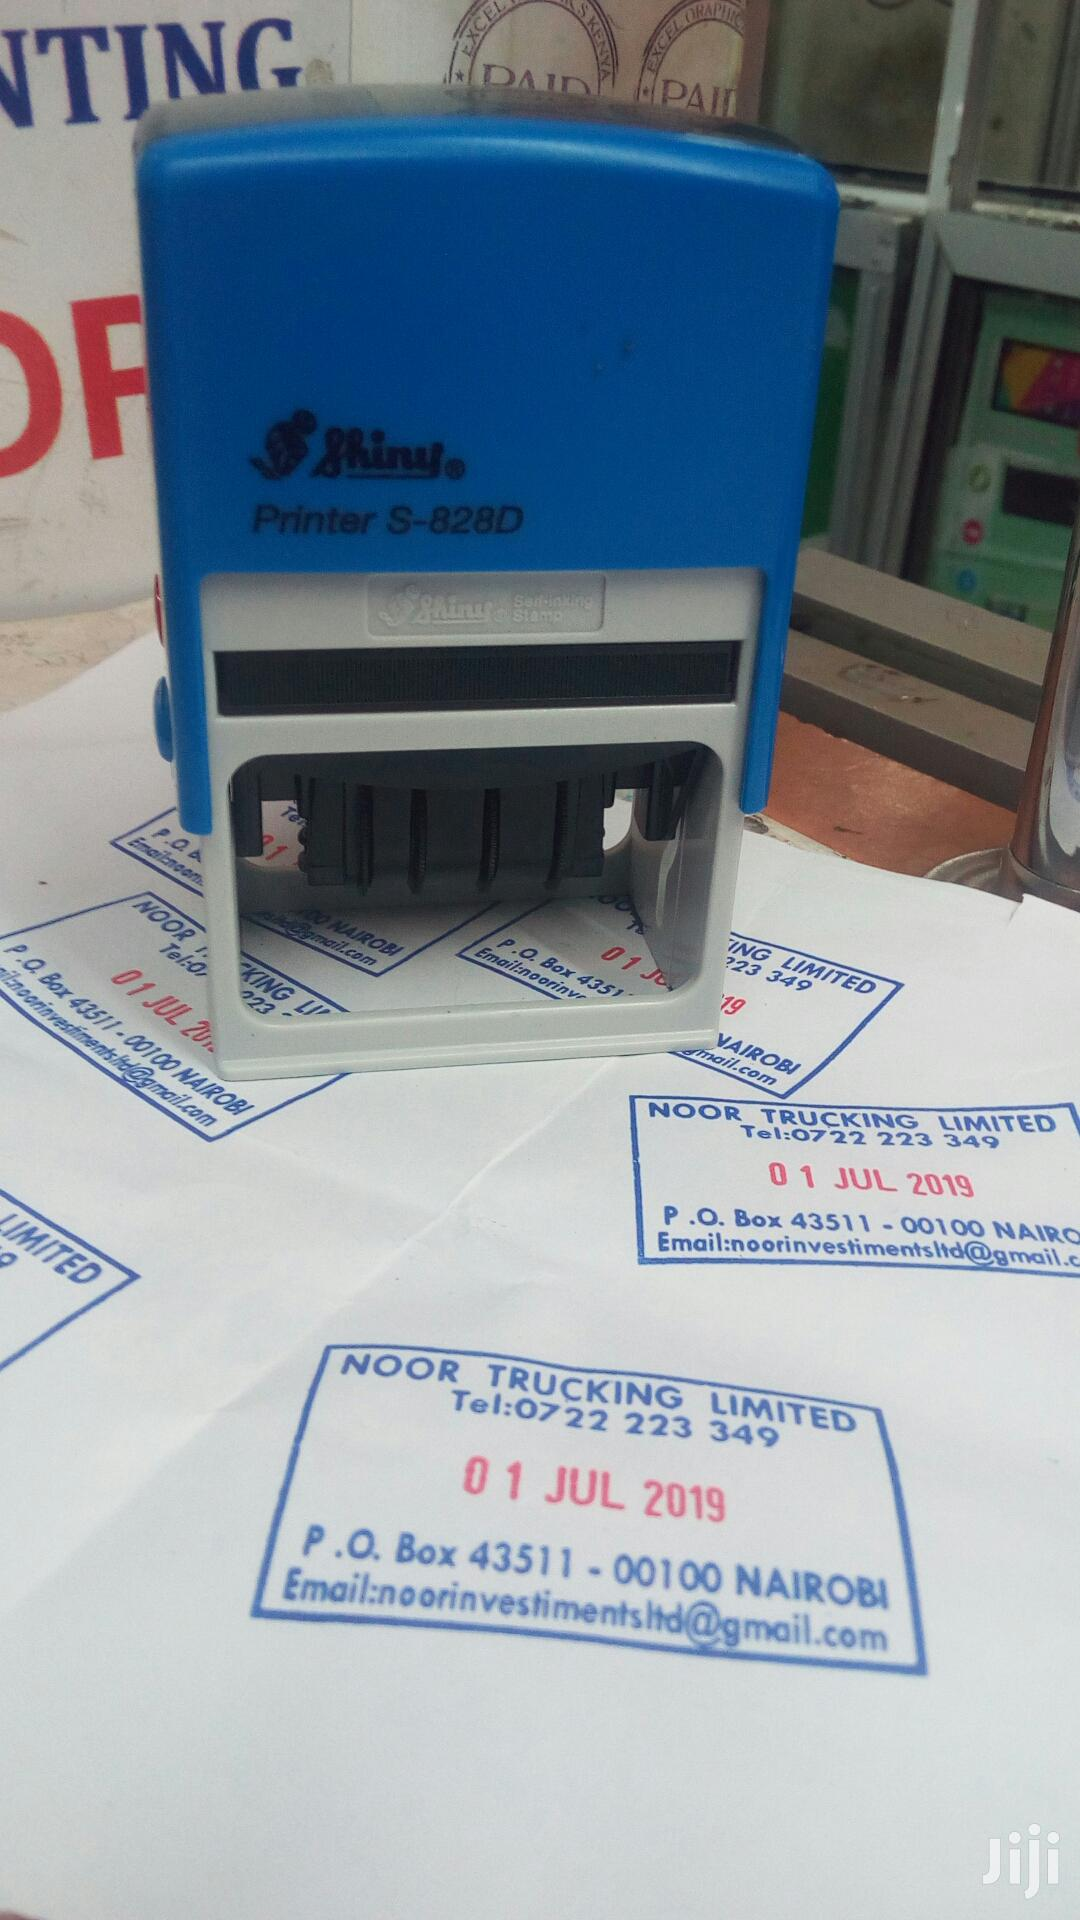 Rubber Stamps & Company Seal | Stationery for sale in Nairobi Central, Nairobi, Kenya